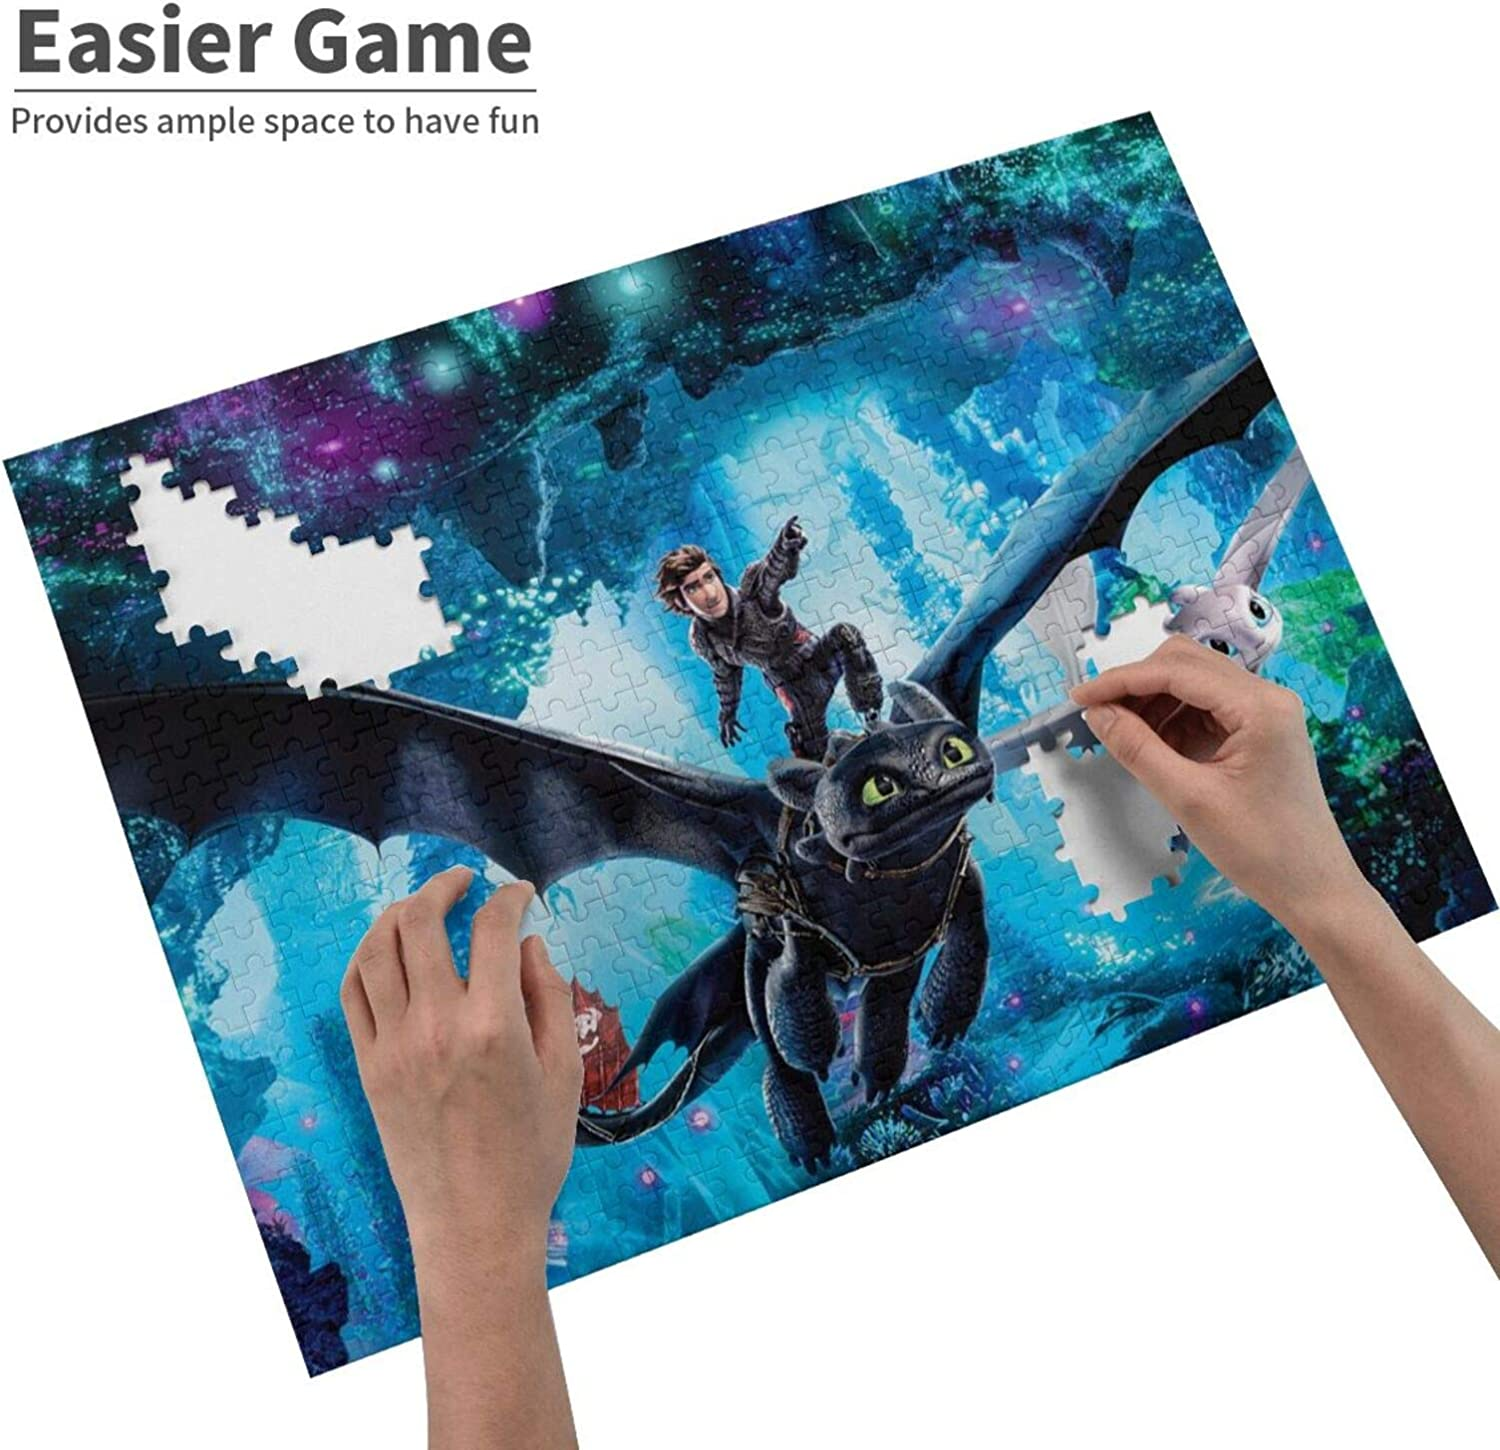 How to Train Your Dragon Jigsaw Puzzles 500 Piece Puzzle Games for Adults Kids